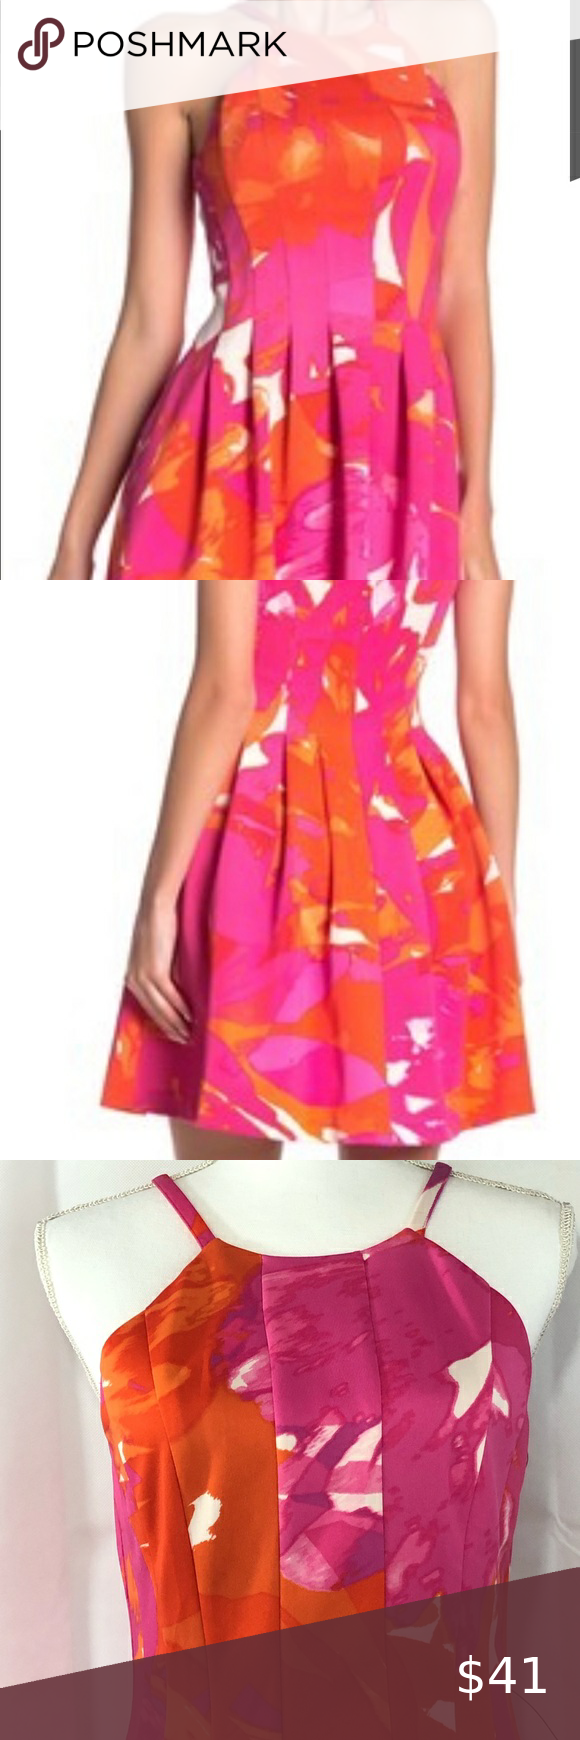 Vince Camuto Sz 10 Pink Orange Fit Flare Dress Nwot A Vince Camuto Figure Flattering Fit And Flare Dress With A Bo Fit Flare Dress Flare Dress Fit Flare [ 1740 x 580 Pixel ]